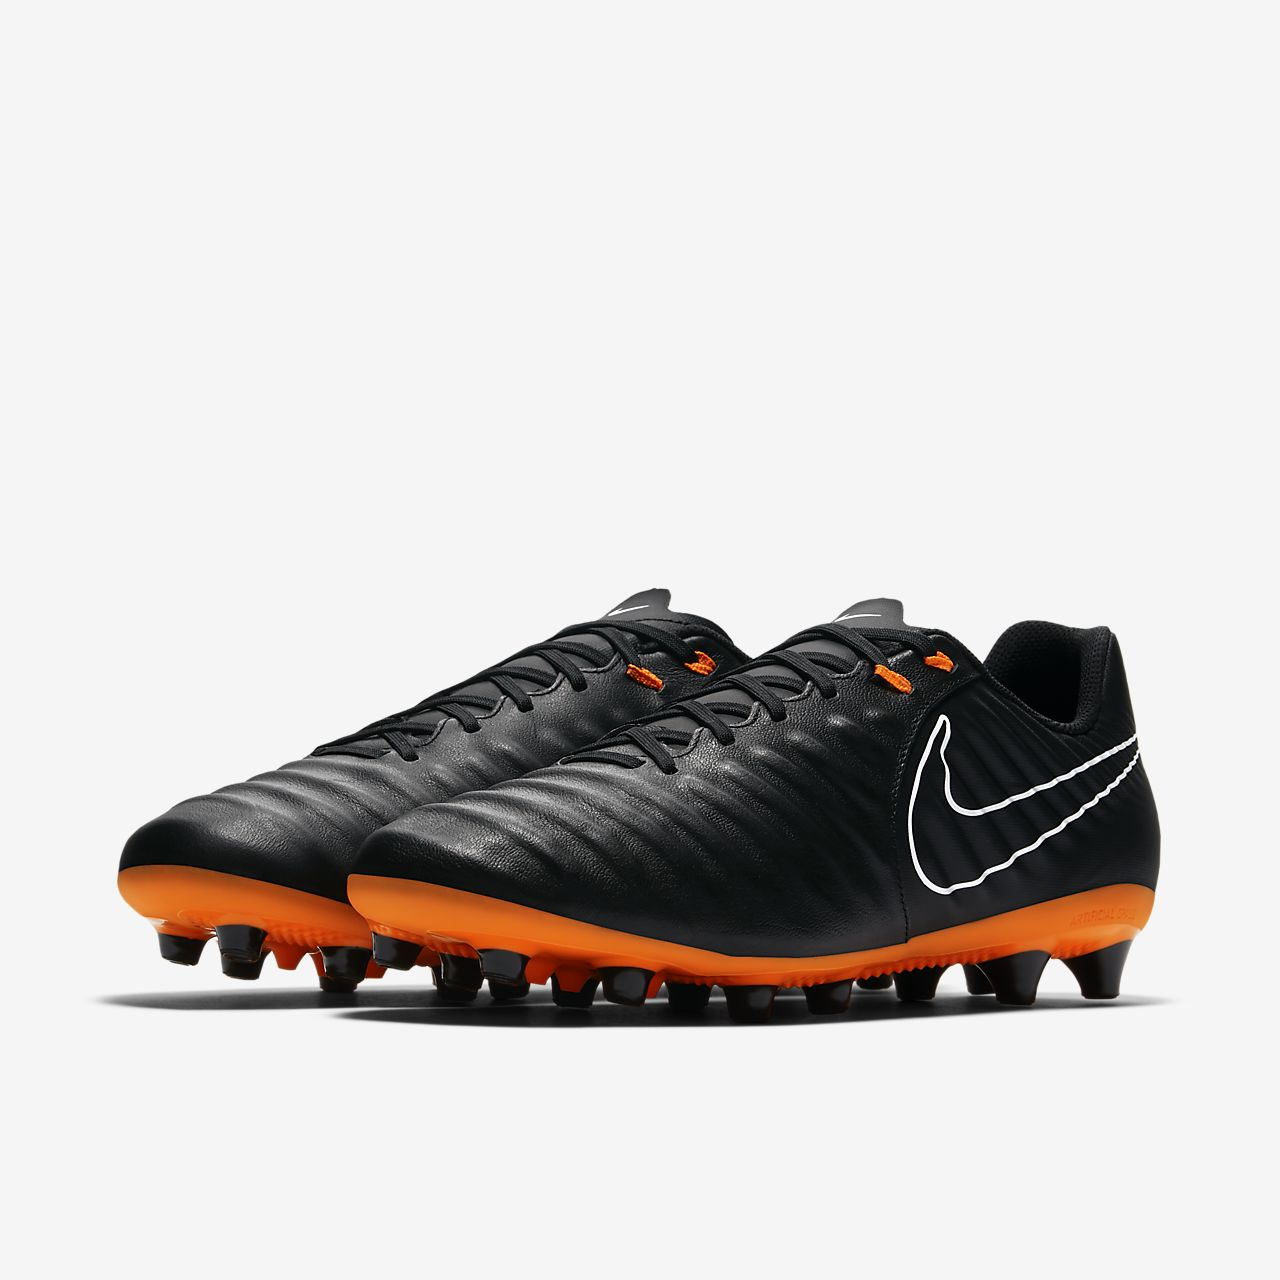 Nike Tiempo Legend VII AG-PRO Artificial-Grass Men's Football Boots Black/White uN2703D